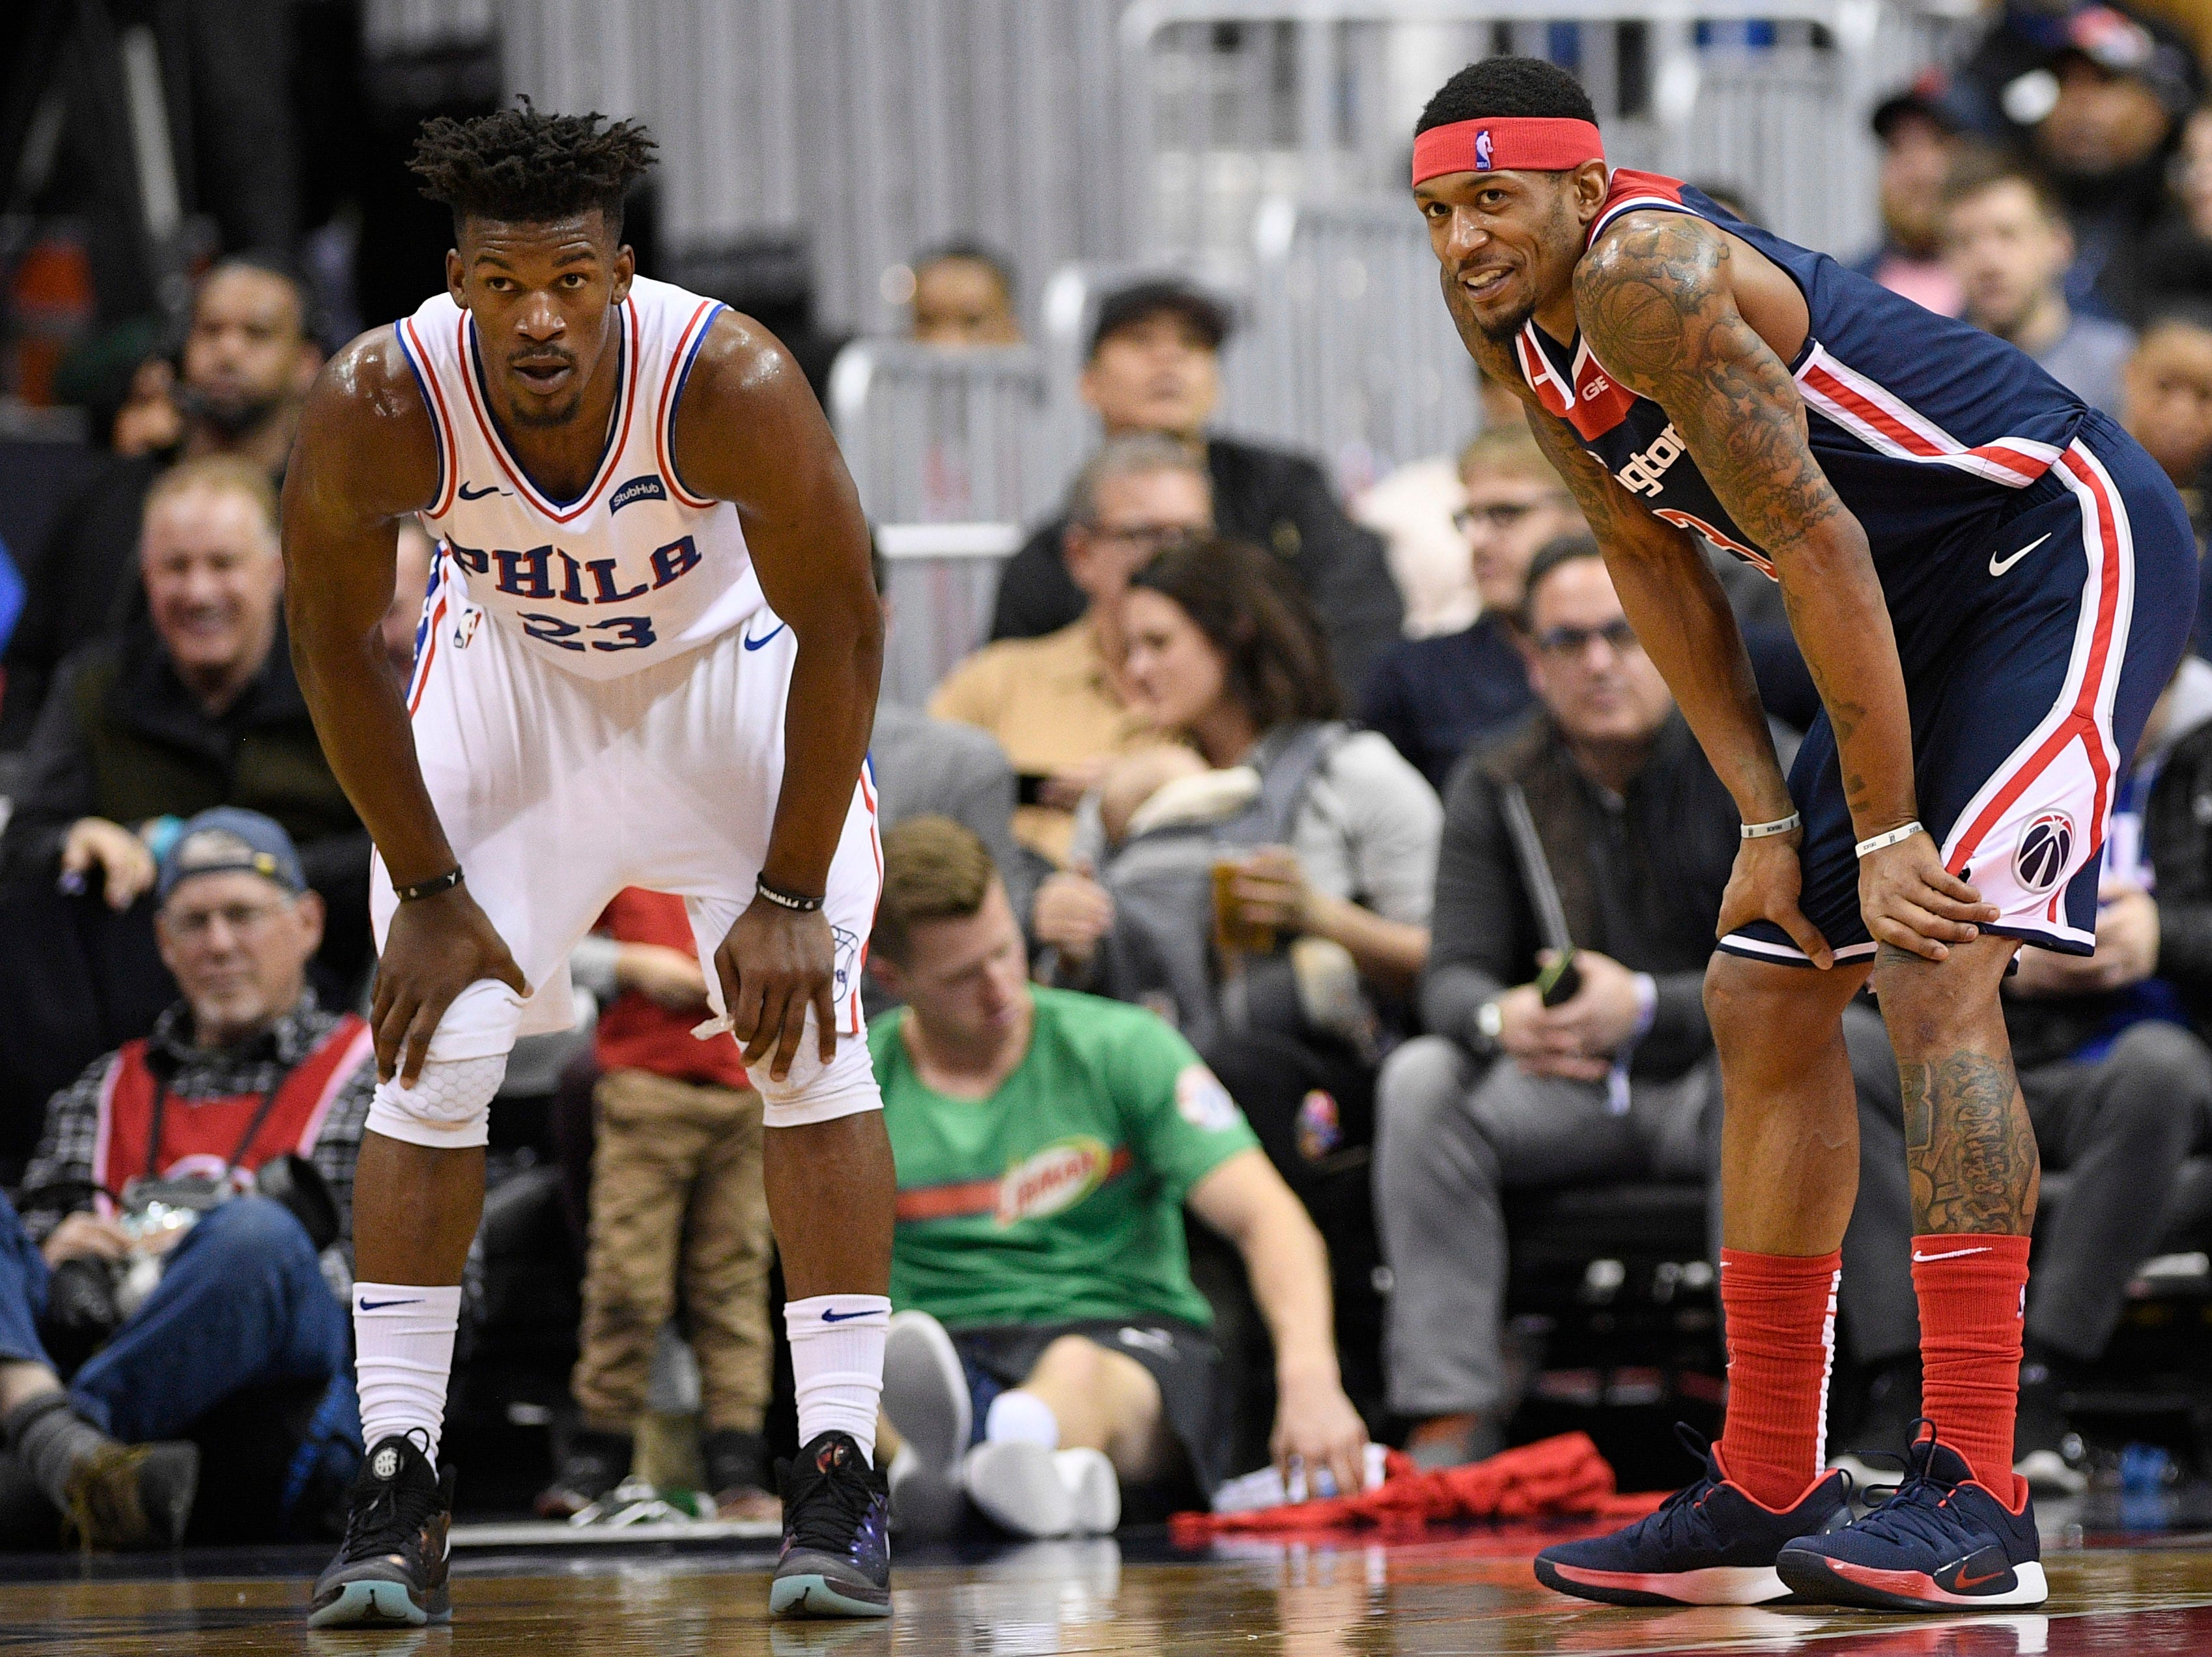 Washington Wizards guard Bradley Beal (3) reacts as he stands next to Philadelphia 76ers guard Jimmy Butler (23) during the second half of an NBA basketball game, Wednesday, Jan. 9, 2019, in Washington. The Wizards won 123-106. (AP Photo/Nick Wass)